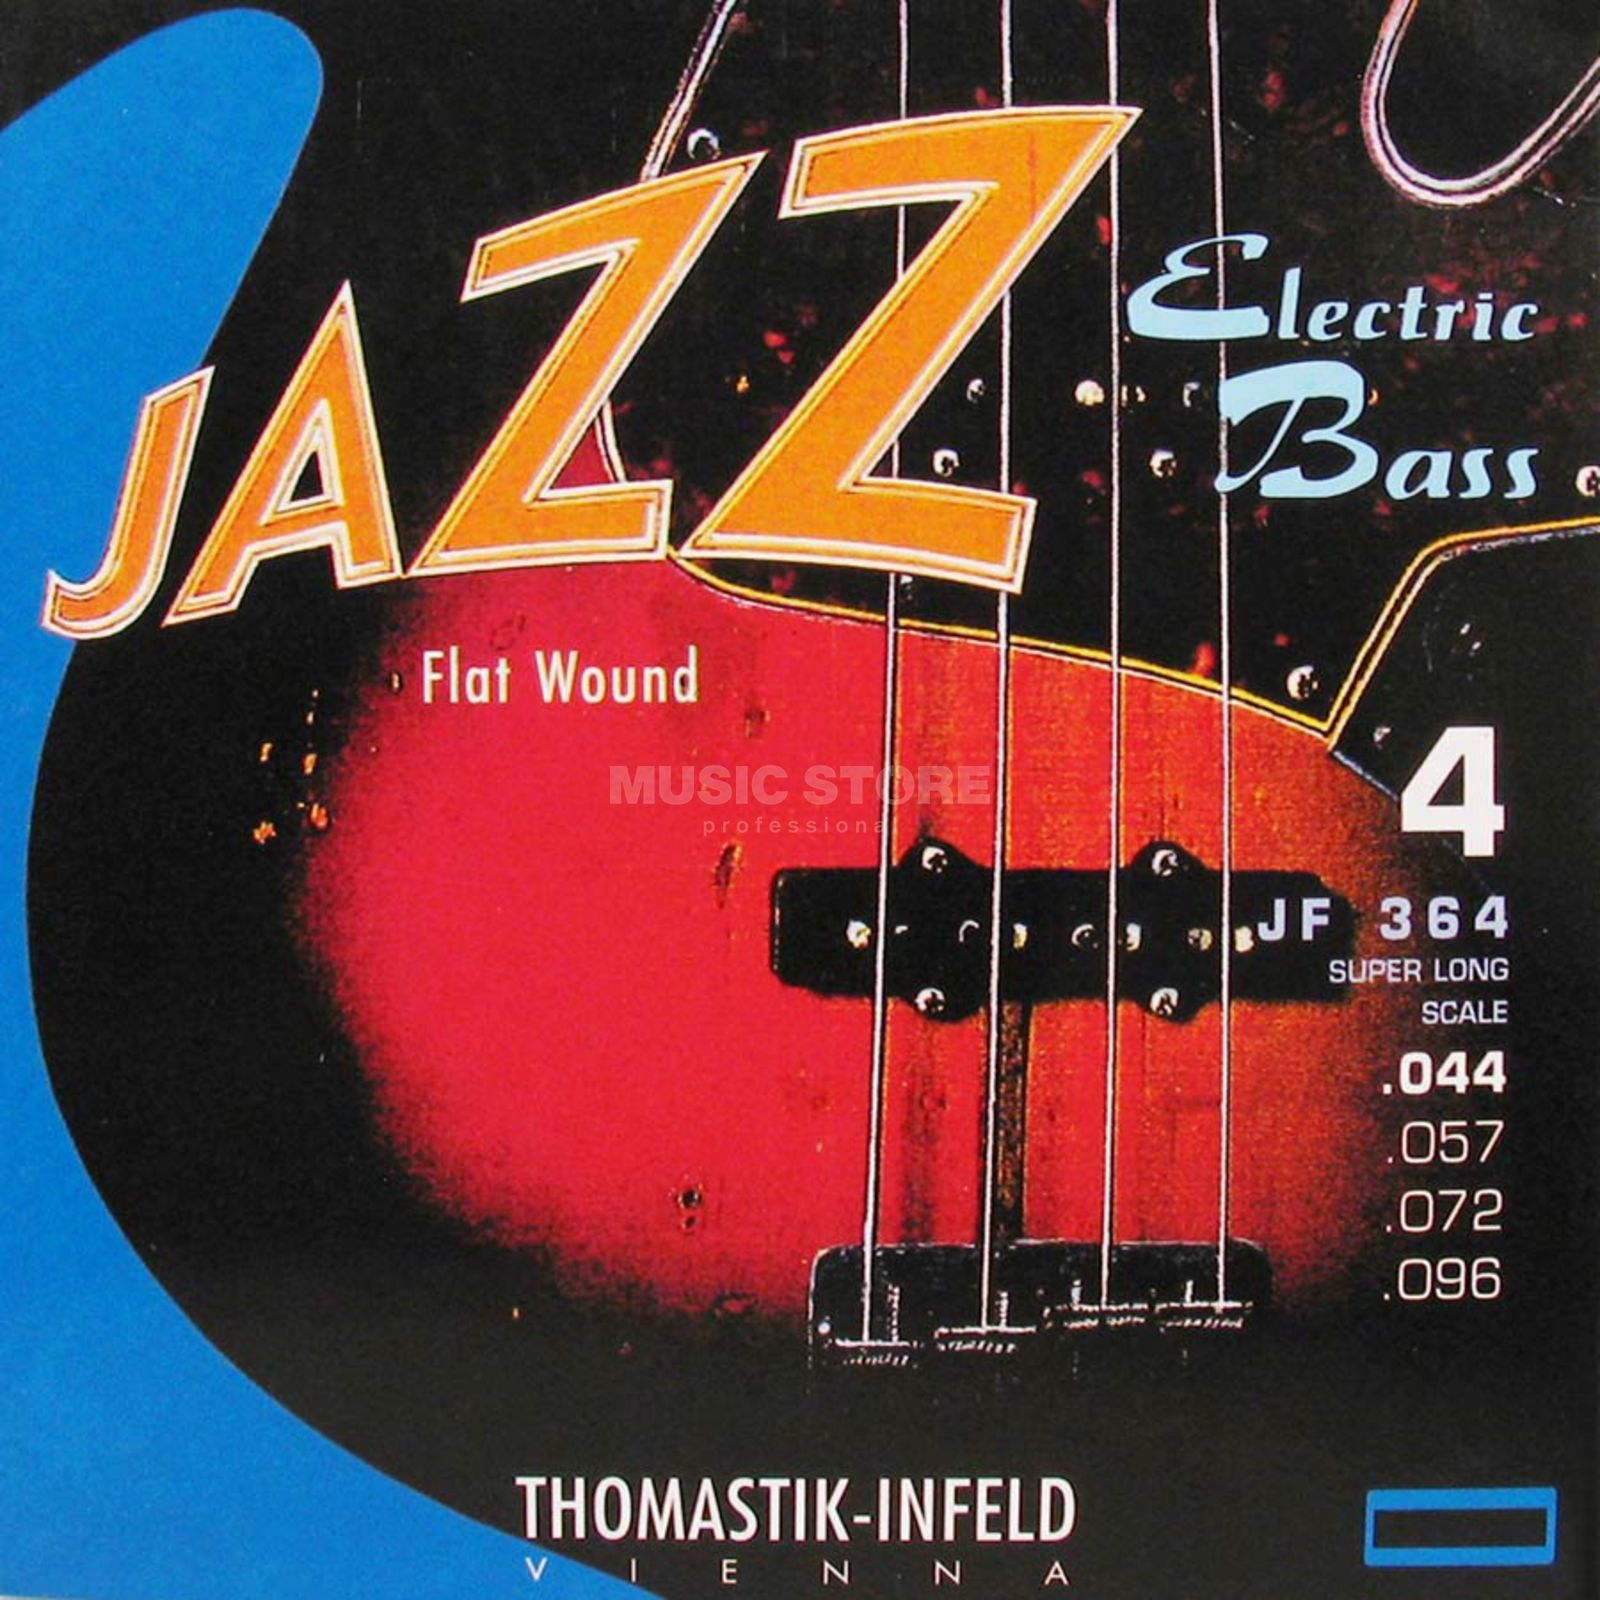 Thomastik 4 Bass Strings JF 364 44-96 Nickel Flat Wound Product Image